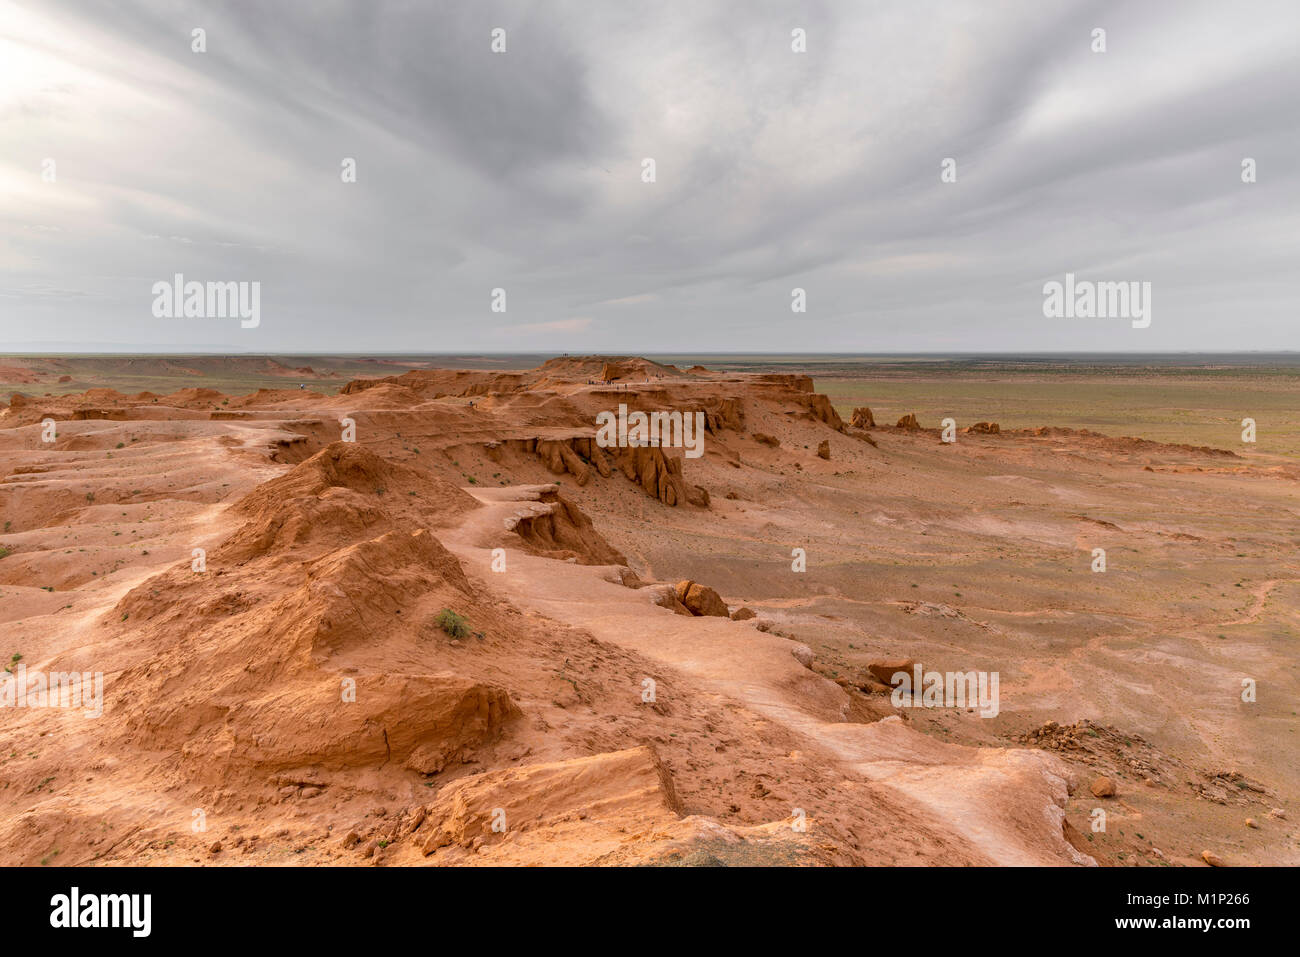 Flaming Cliffs, Provinz Bajanzag, South Gobi, Mongolei, Zentralasien, Asien Stockbild